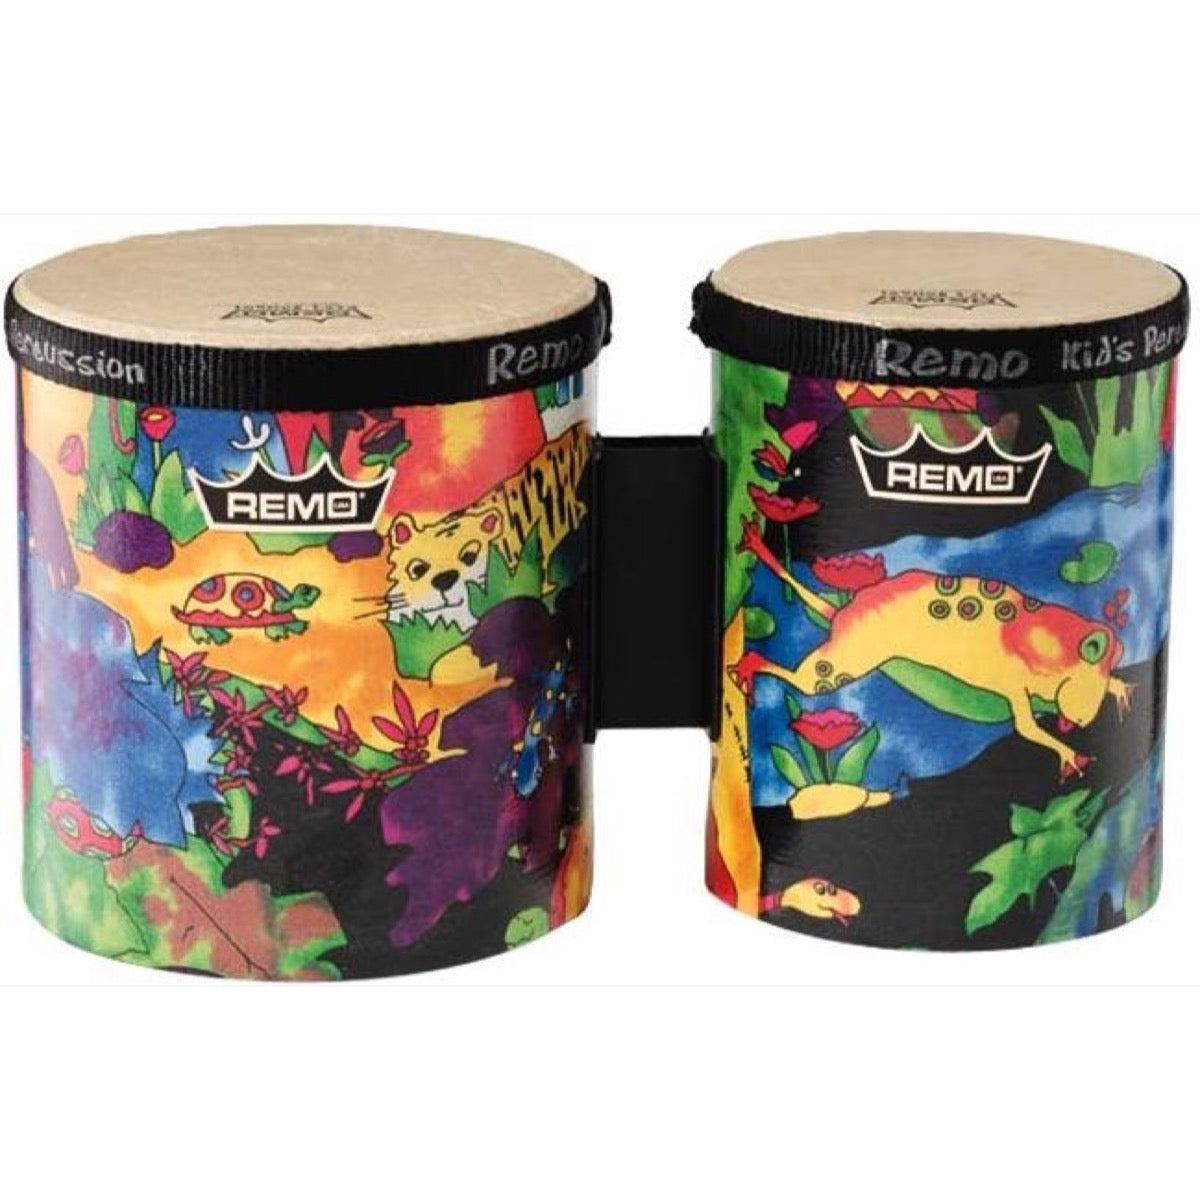 Remo Kids Percussion Bongos